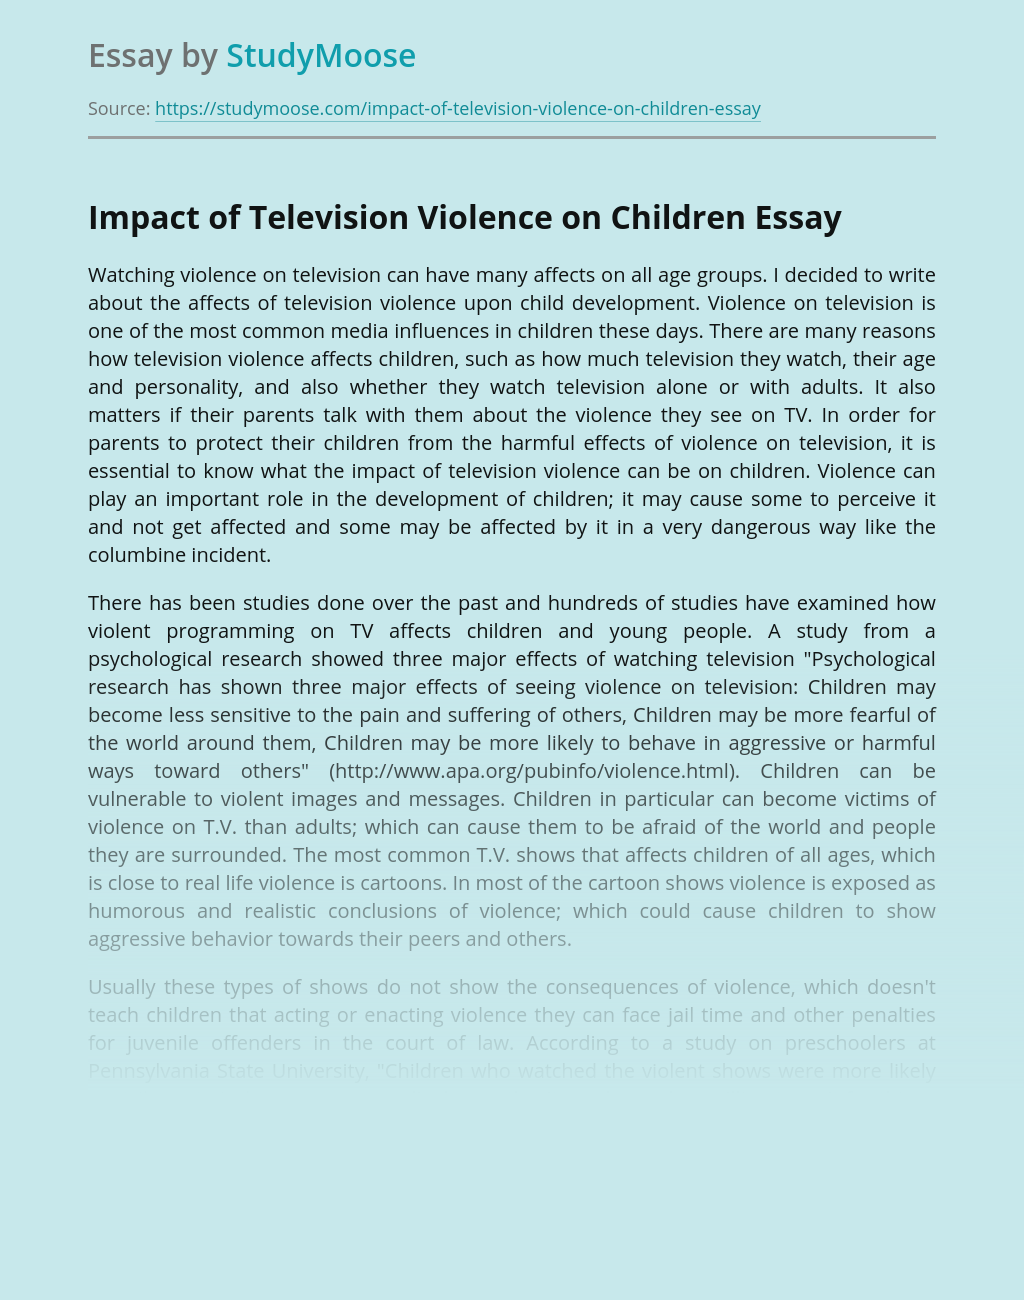 Impact of Television Violence on Children